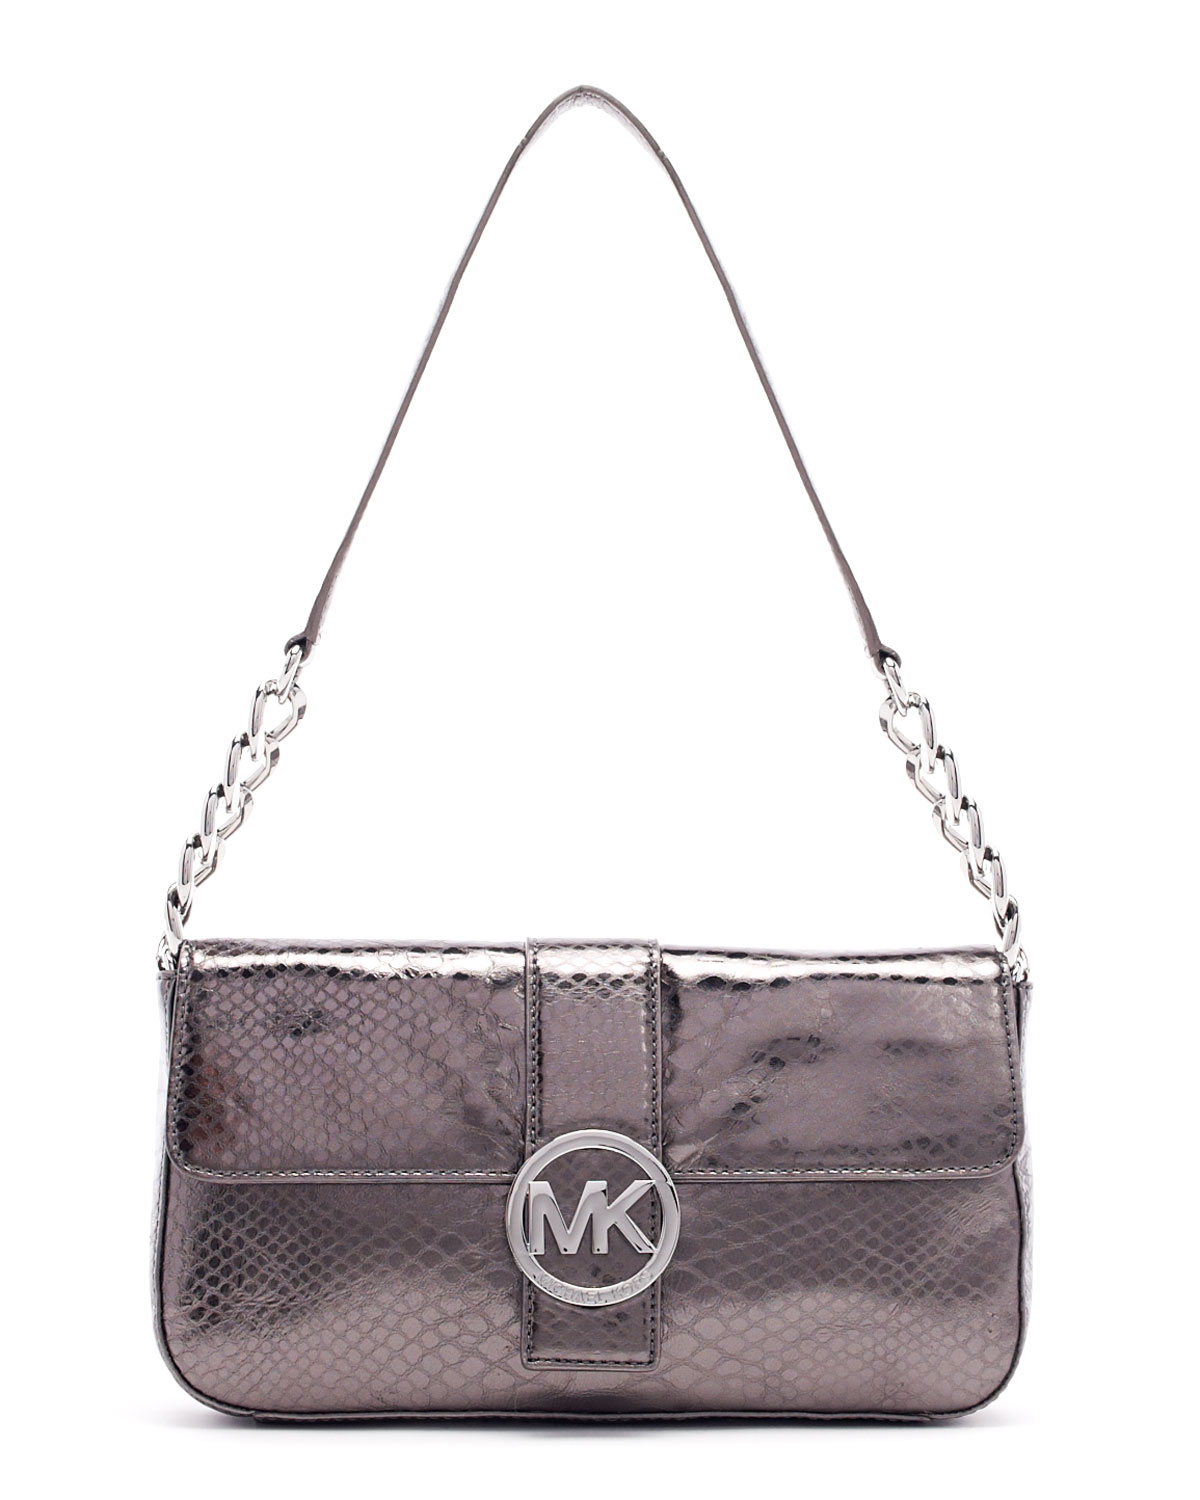 5c4559c5481e Lyst - MICHAEL Michael Kors Small Fulton Pythonembossed Flap Bag in Gray